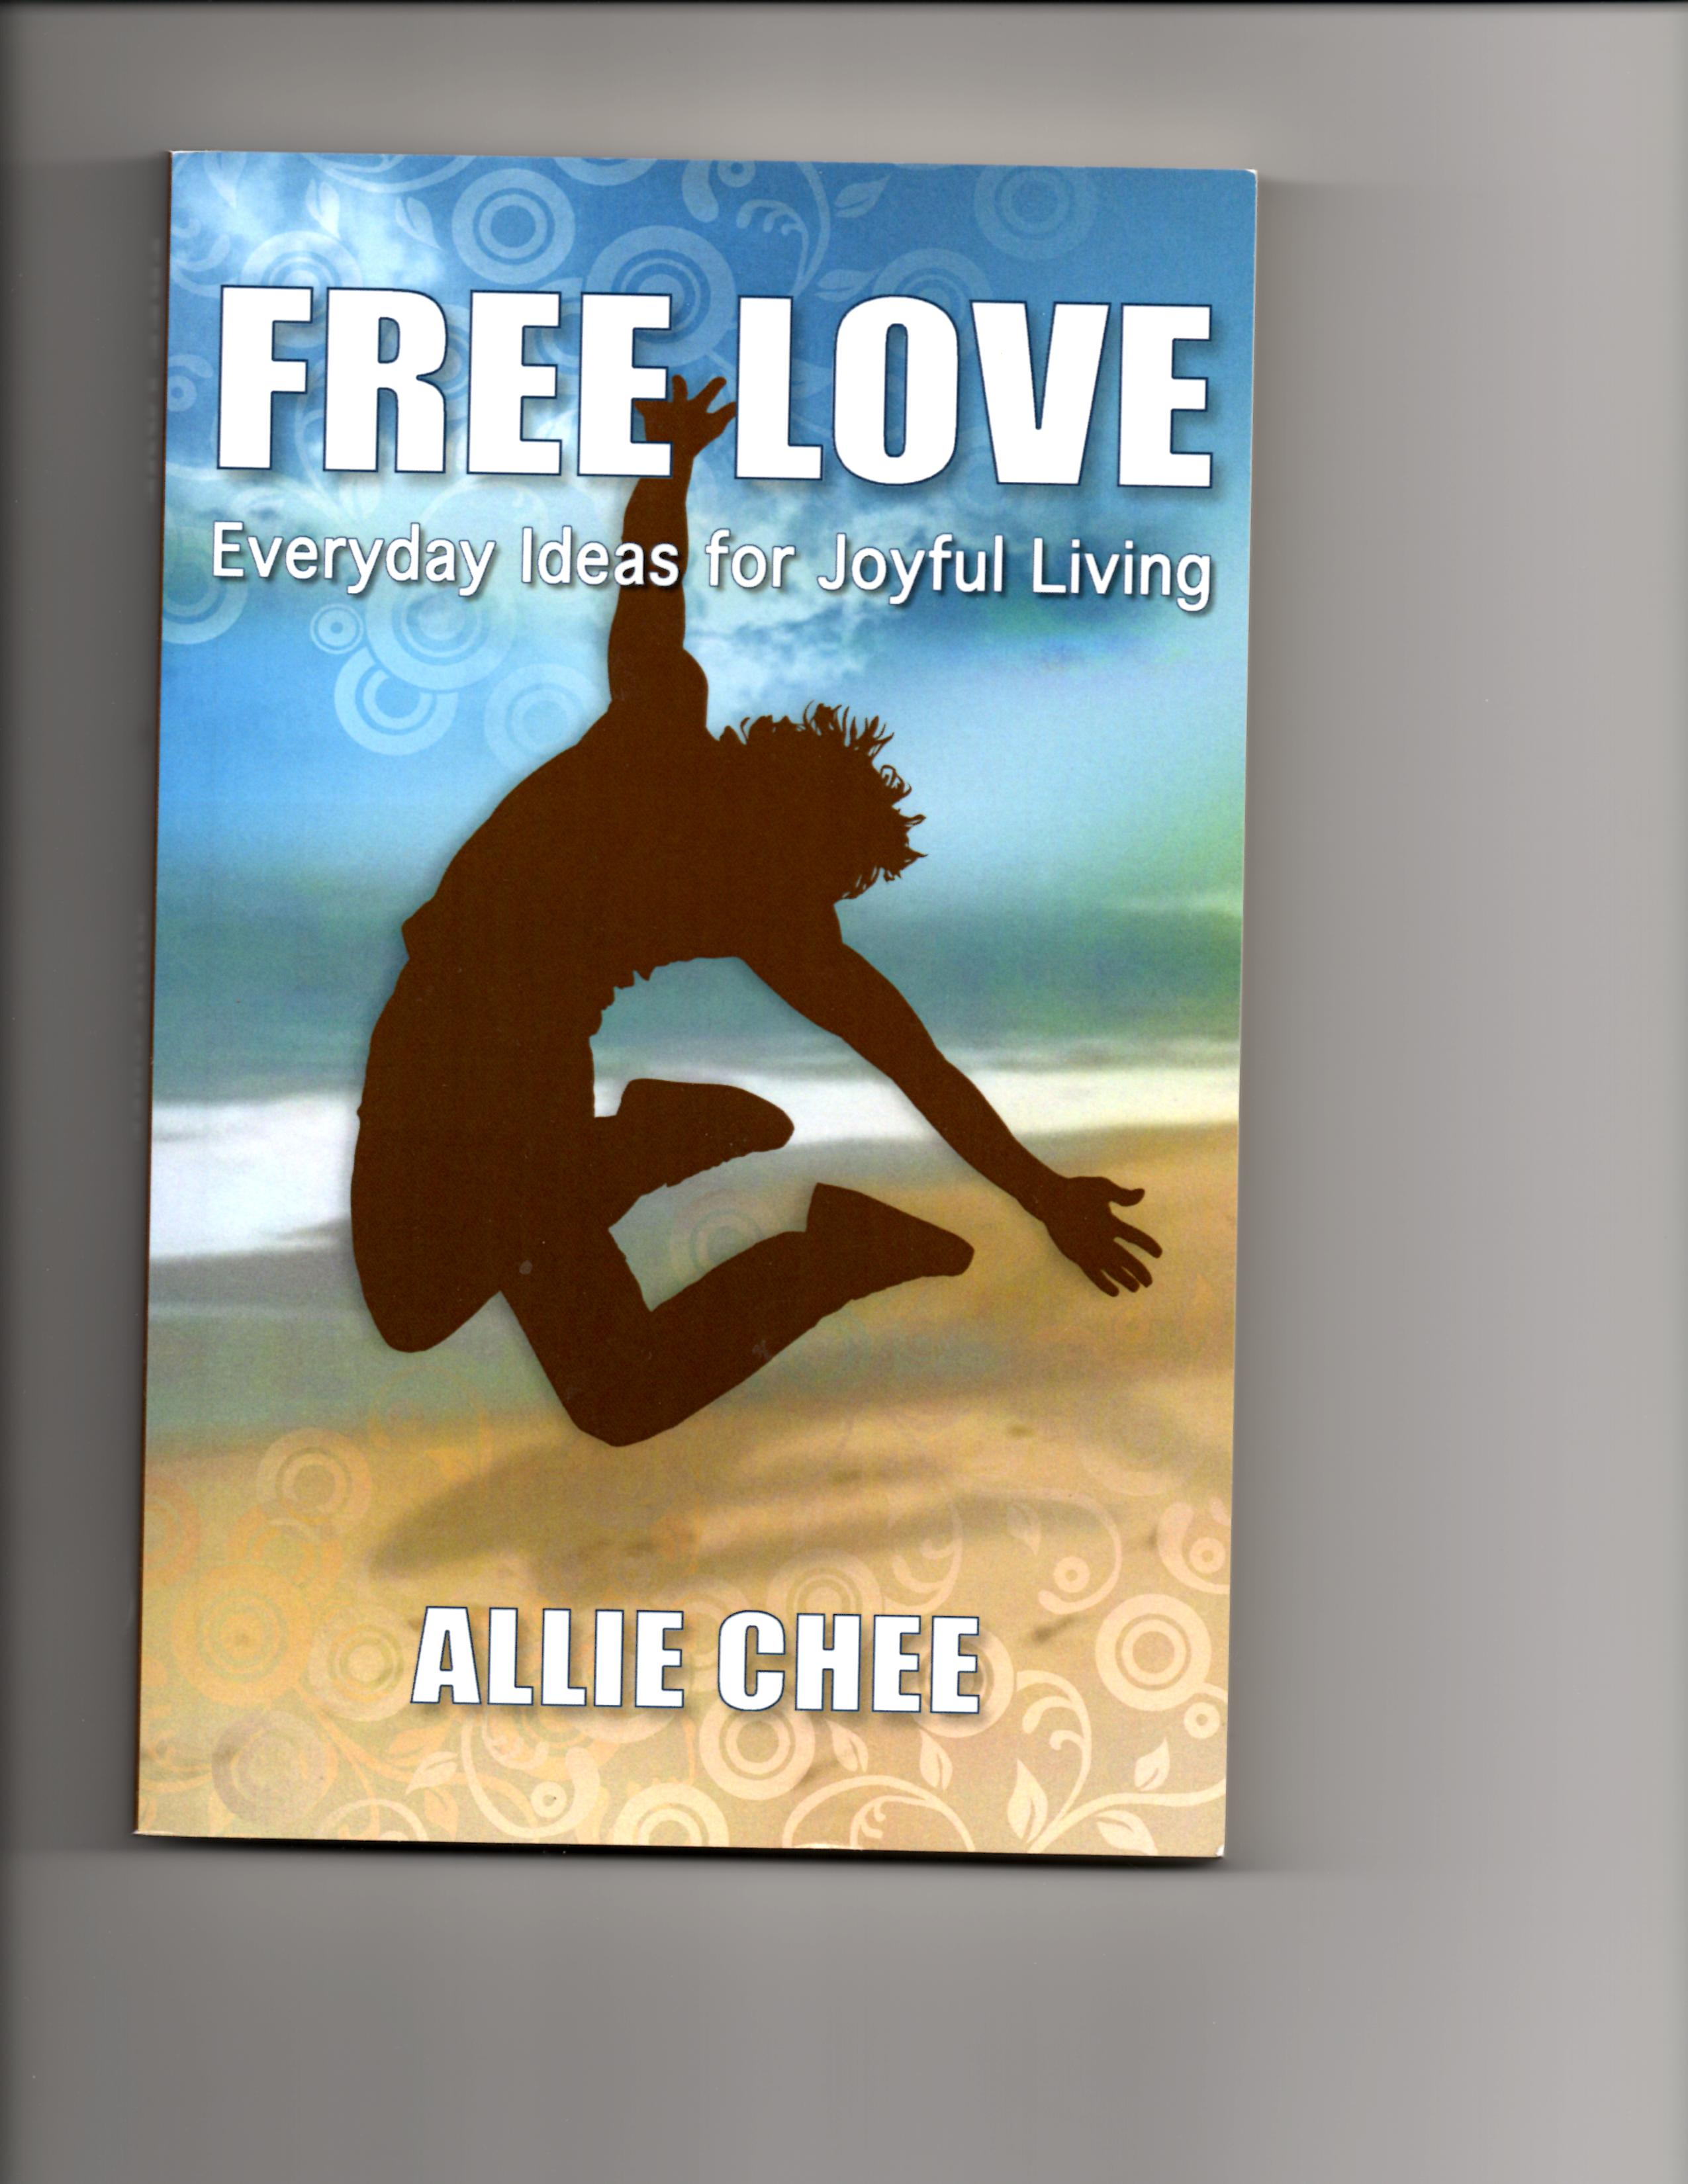 Free Love, Allie Chee